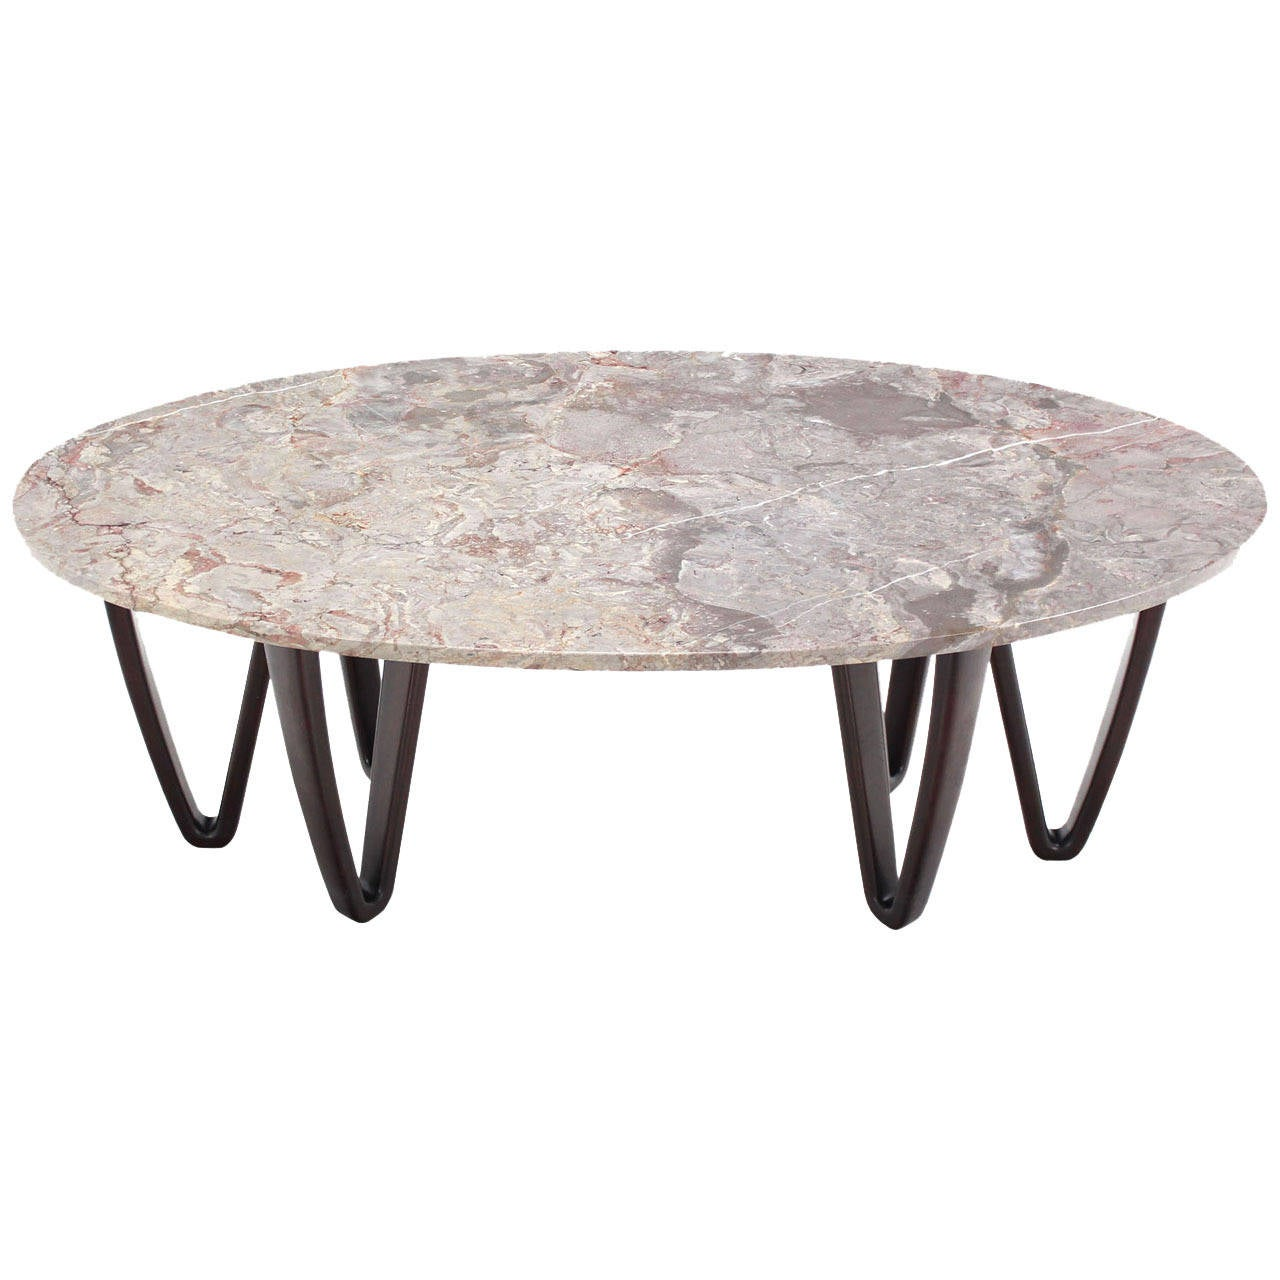 Oval Marble Top Coffee Table On Wooden Hair Pin Legs At 1stdibs